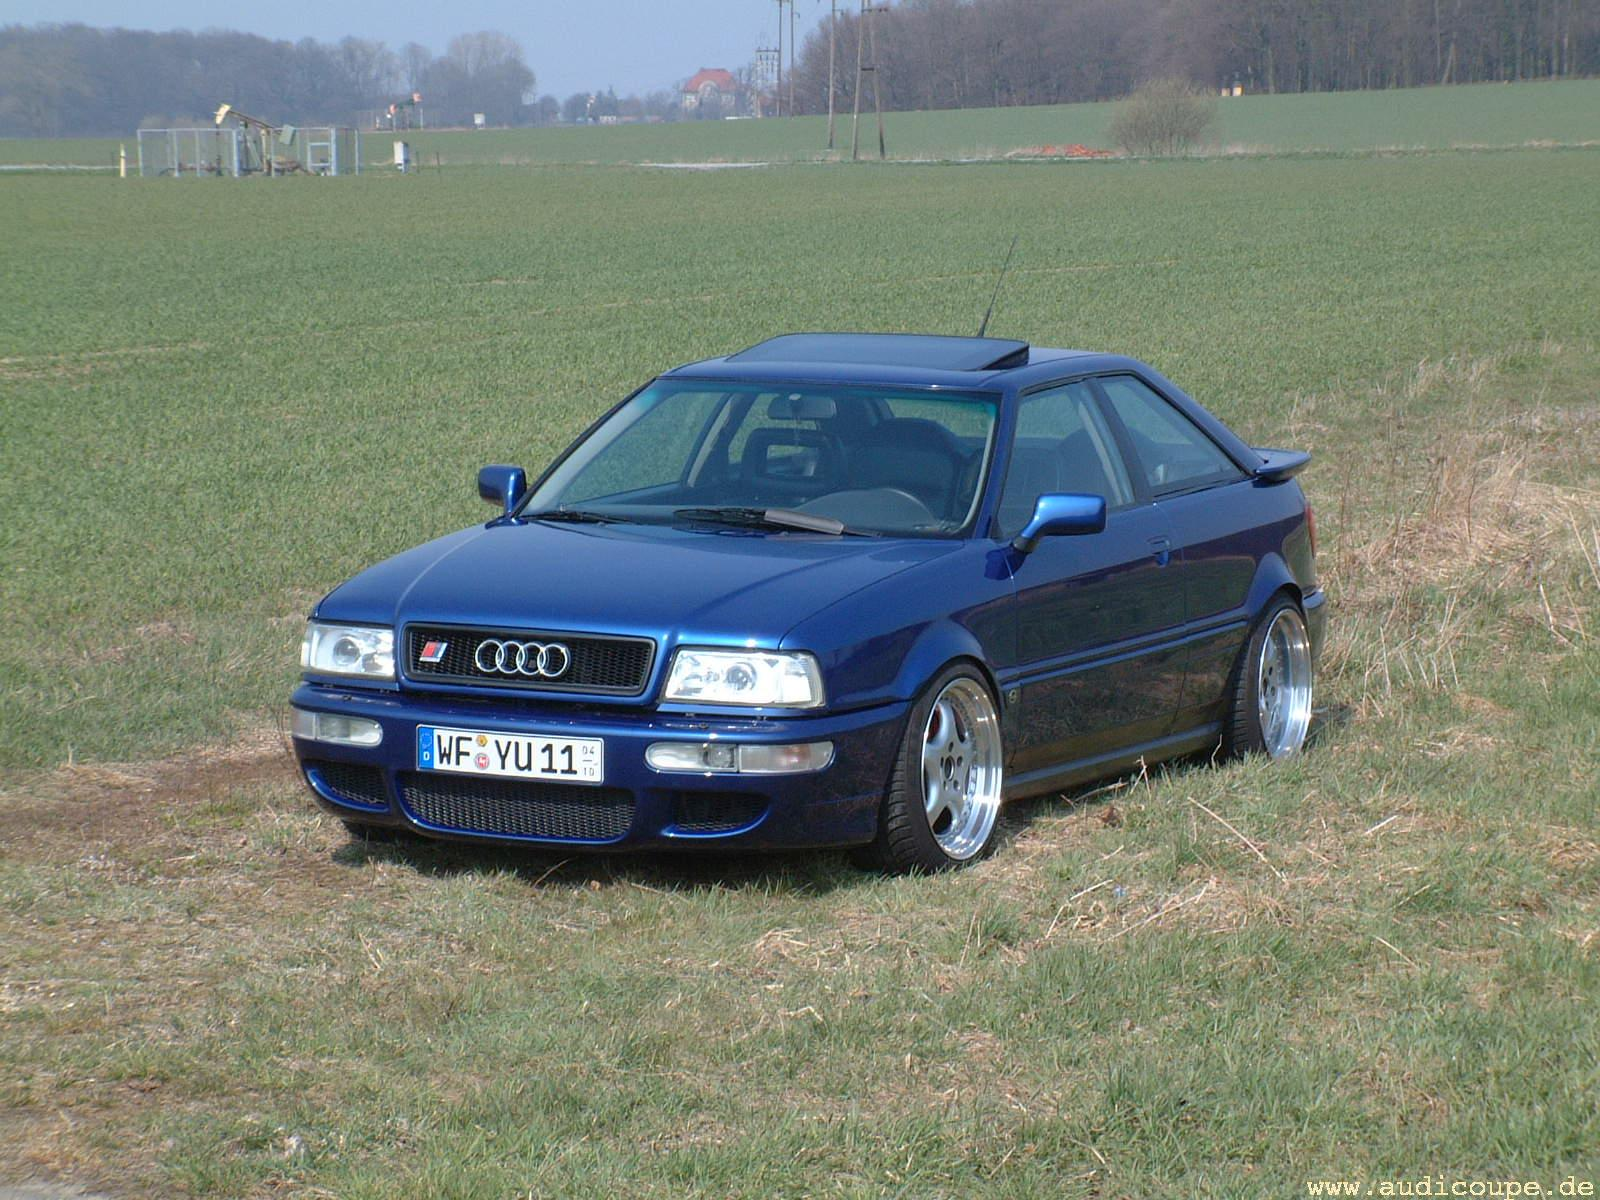 Audi Coupe photos - PhotoGallery with 26 pics| CarsBase.com